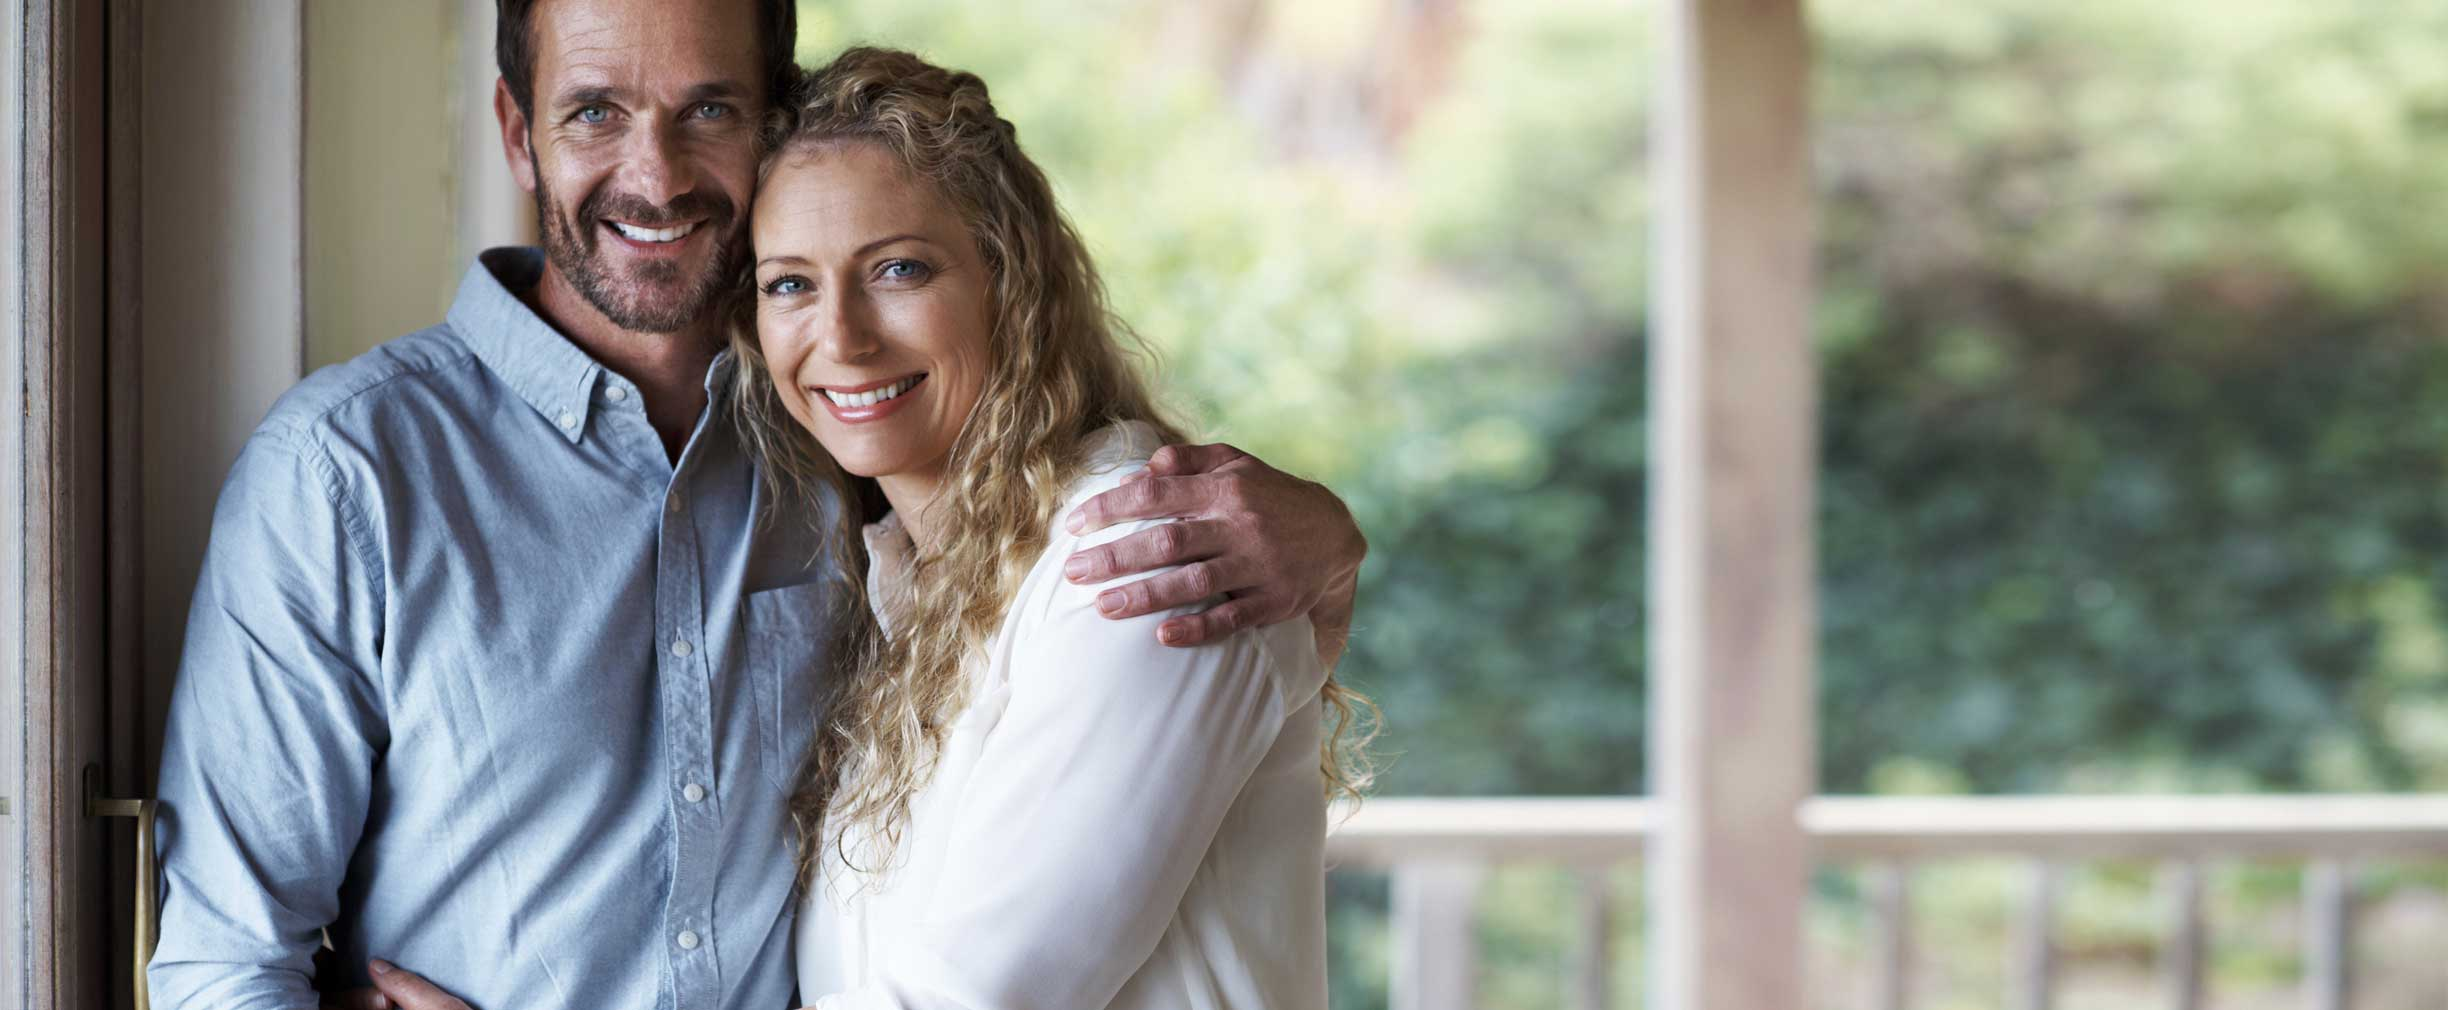 protecting your wealth in an upcoming second marriage